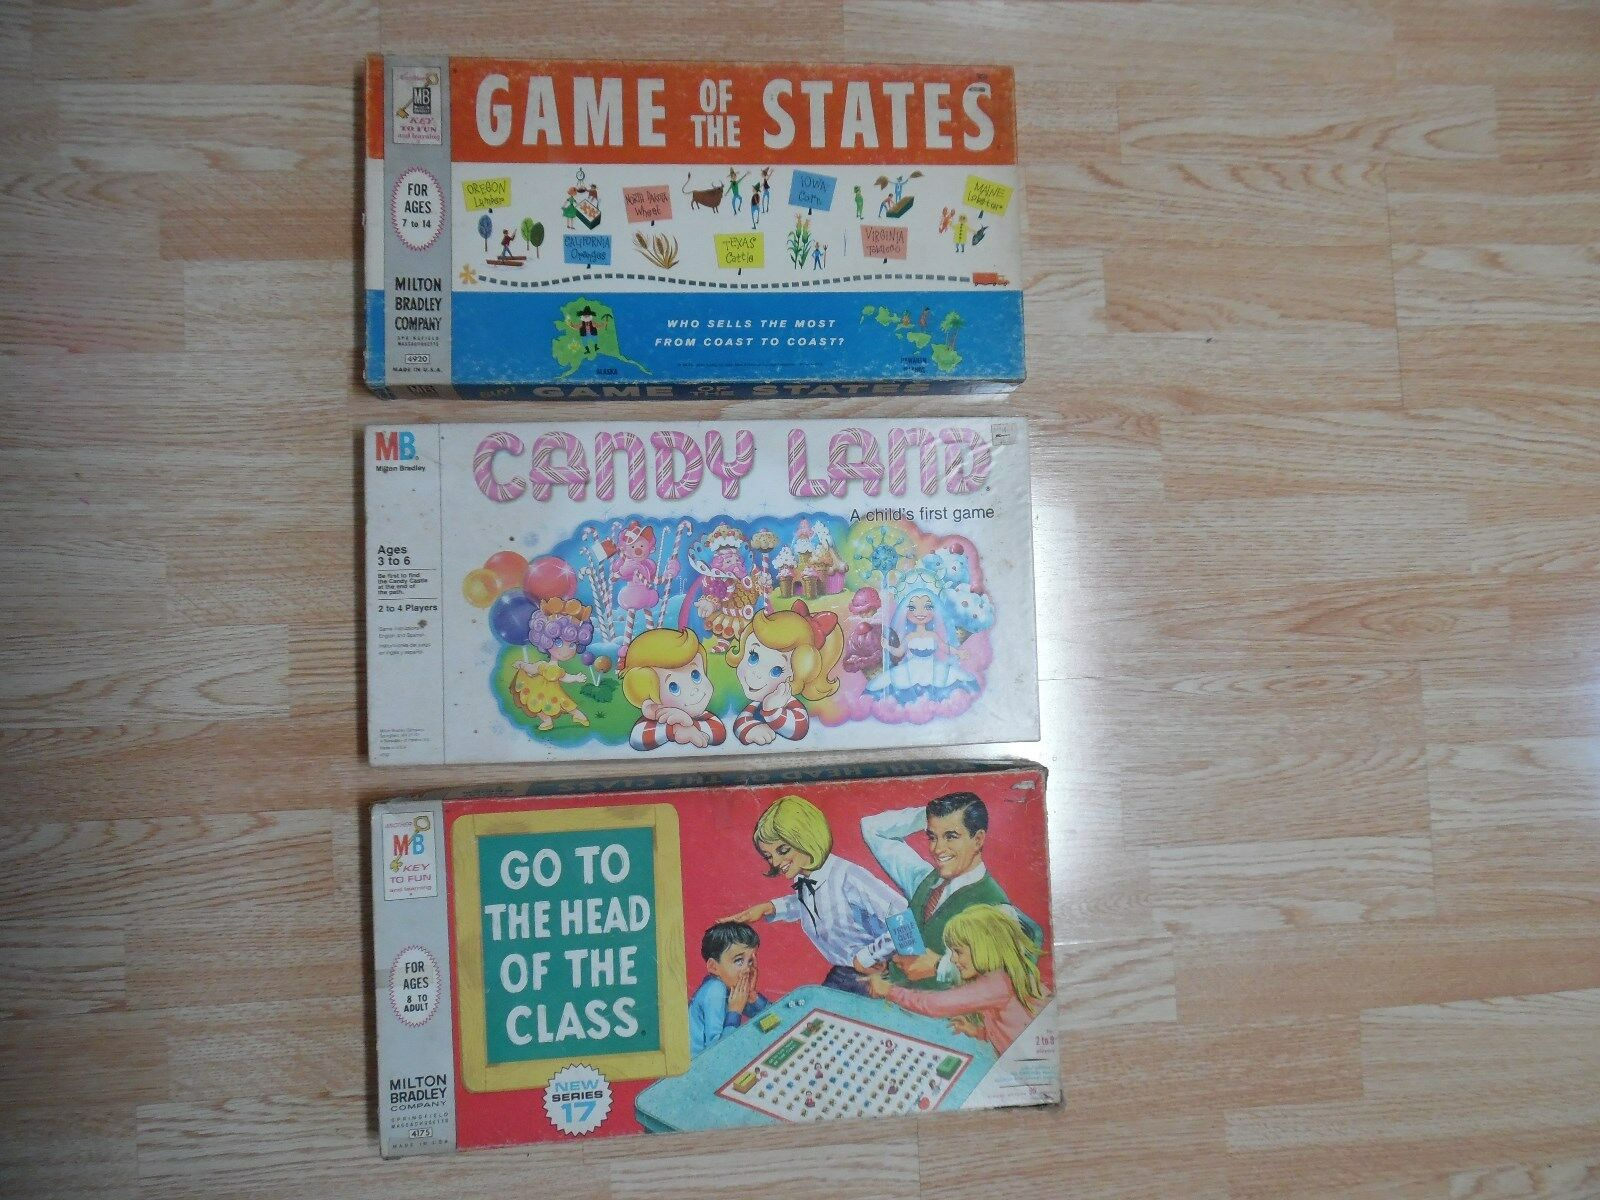 3 Vtg MB Candy Land Game of the States Go to the Head of the Class Board